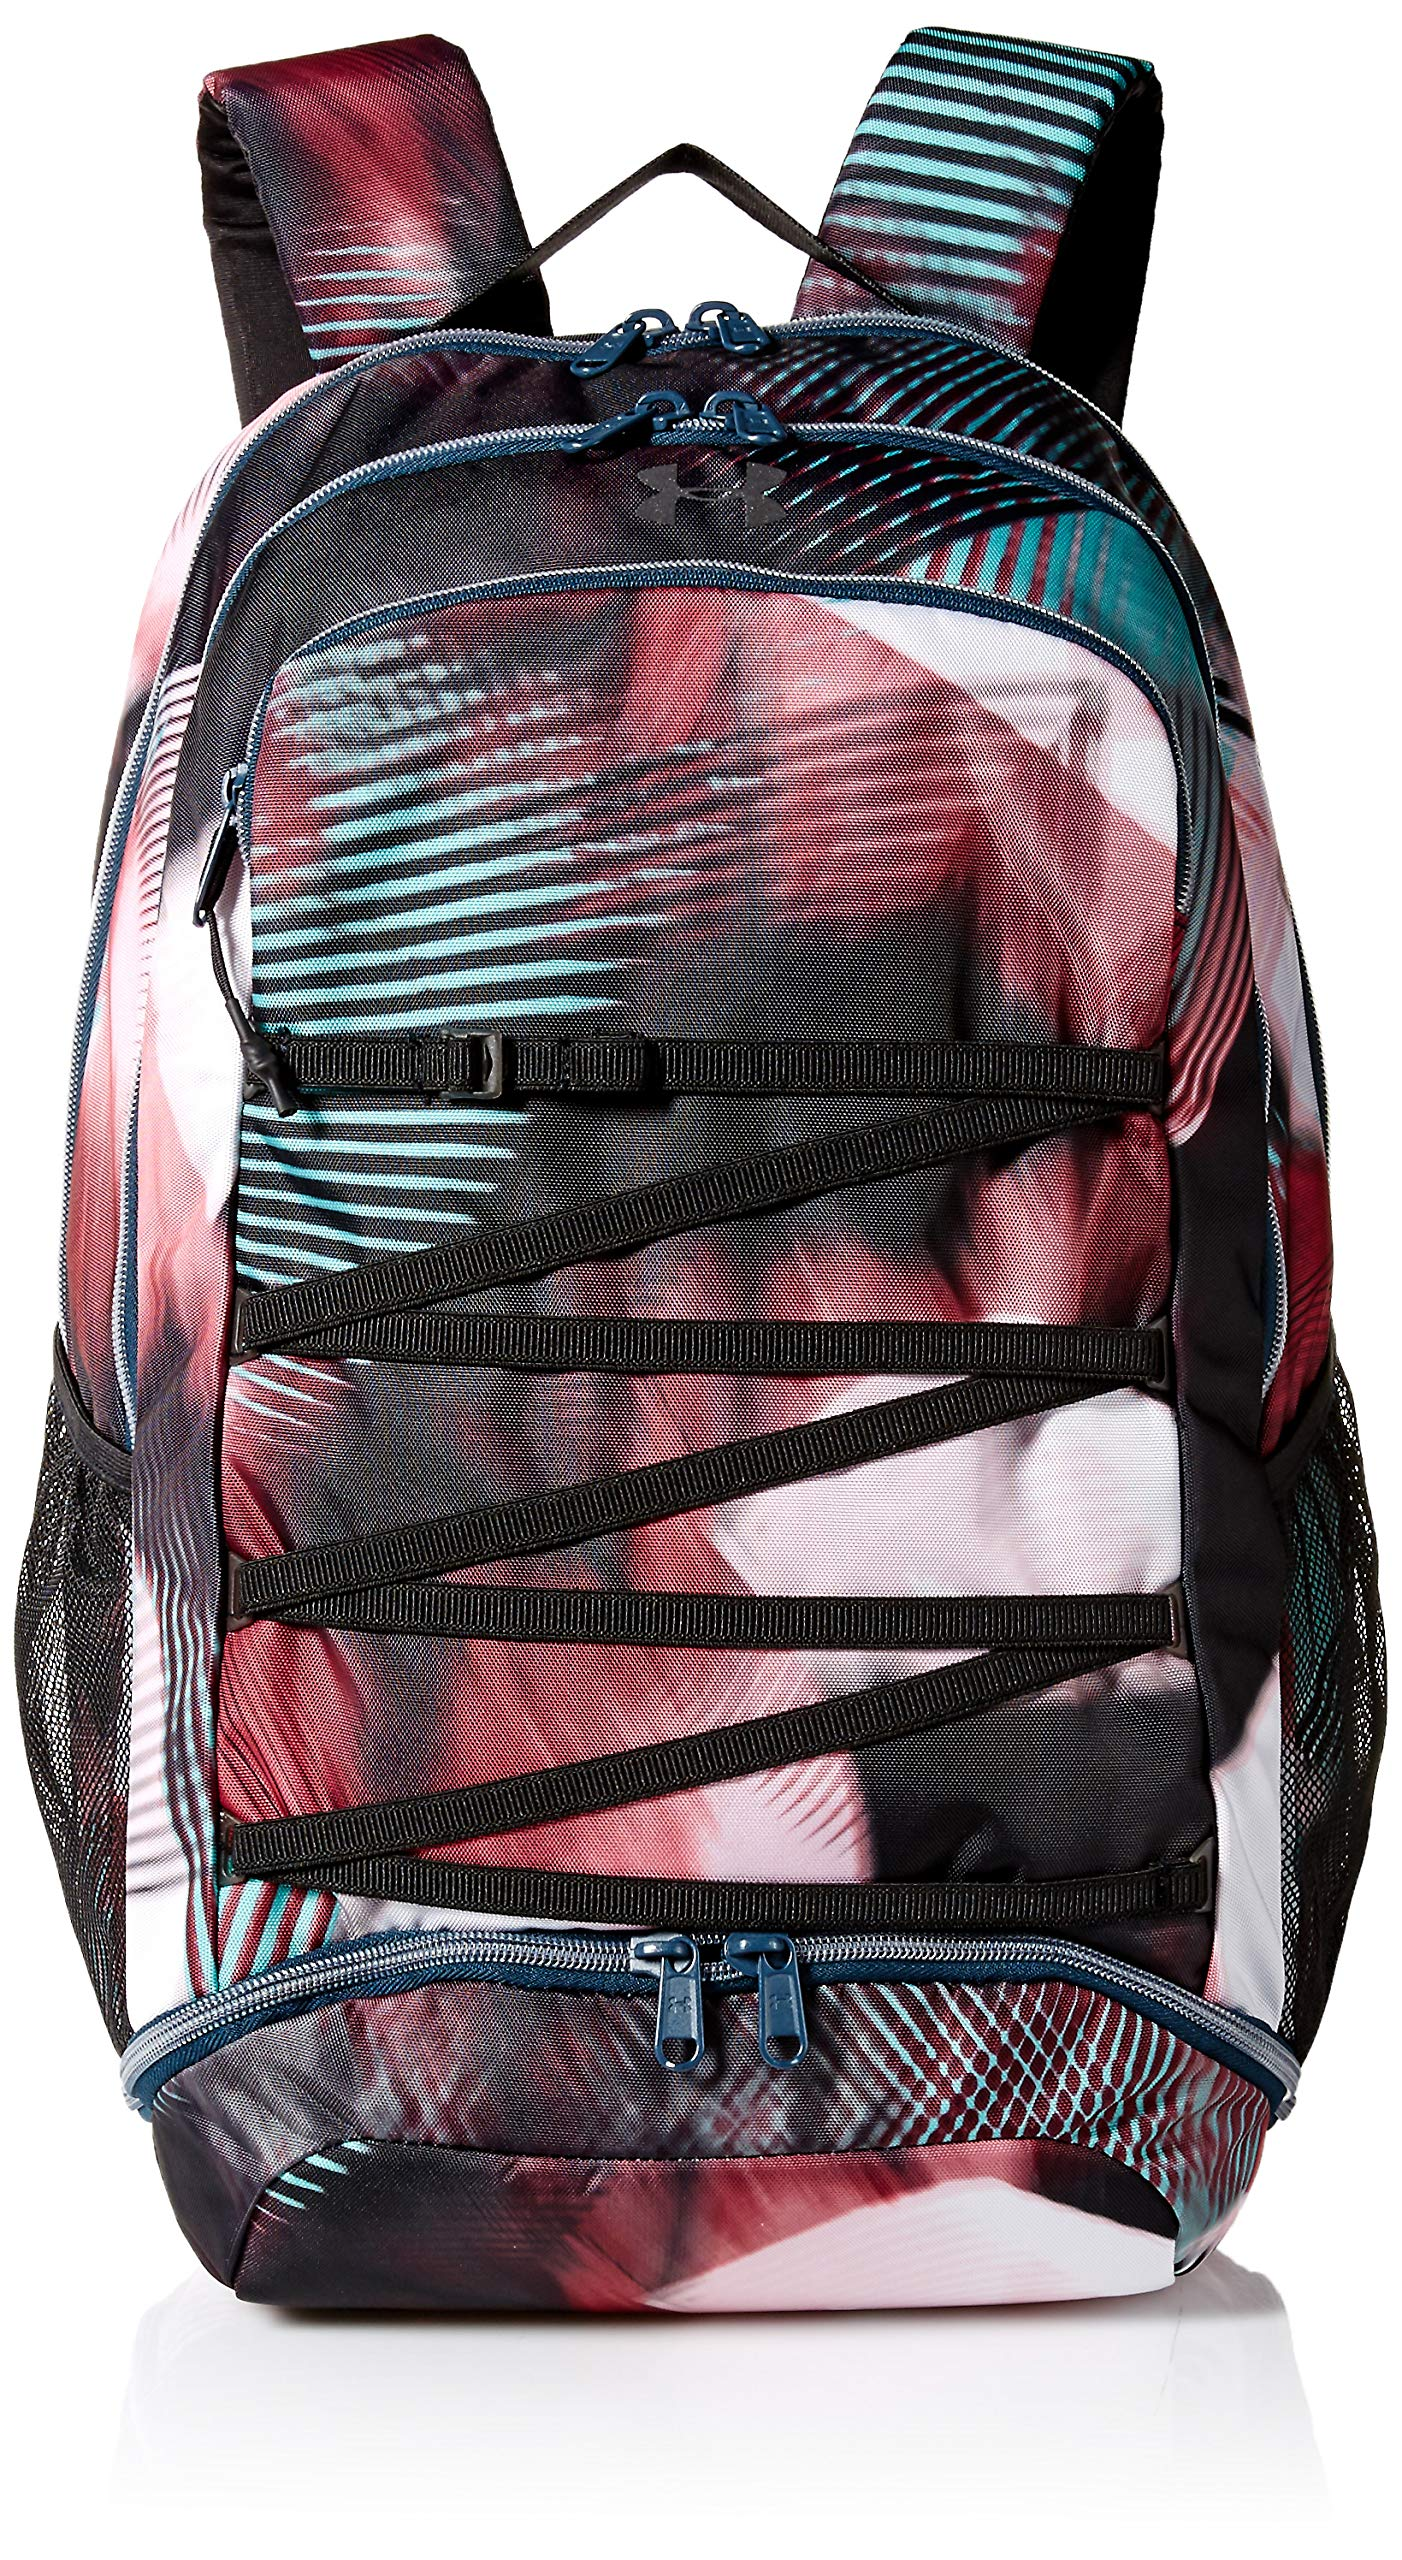 Under Armour Womens Tempo Backpack, Kinetic Purple//Black, One Size Fits All by Under Armour